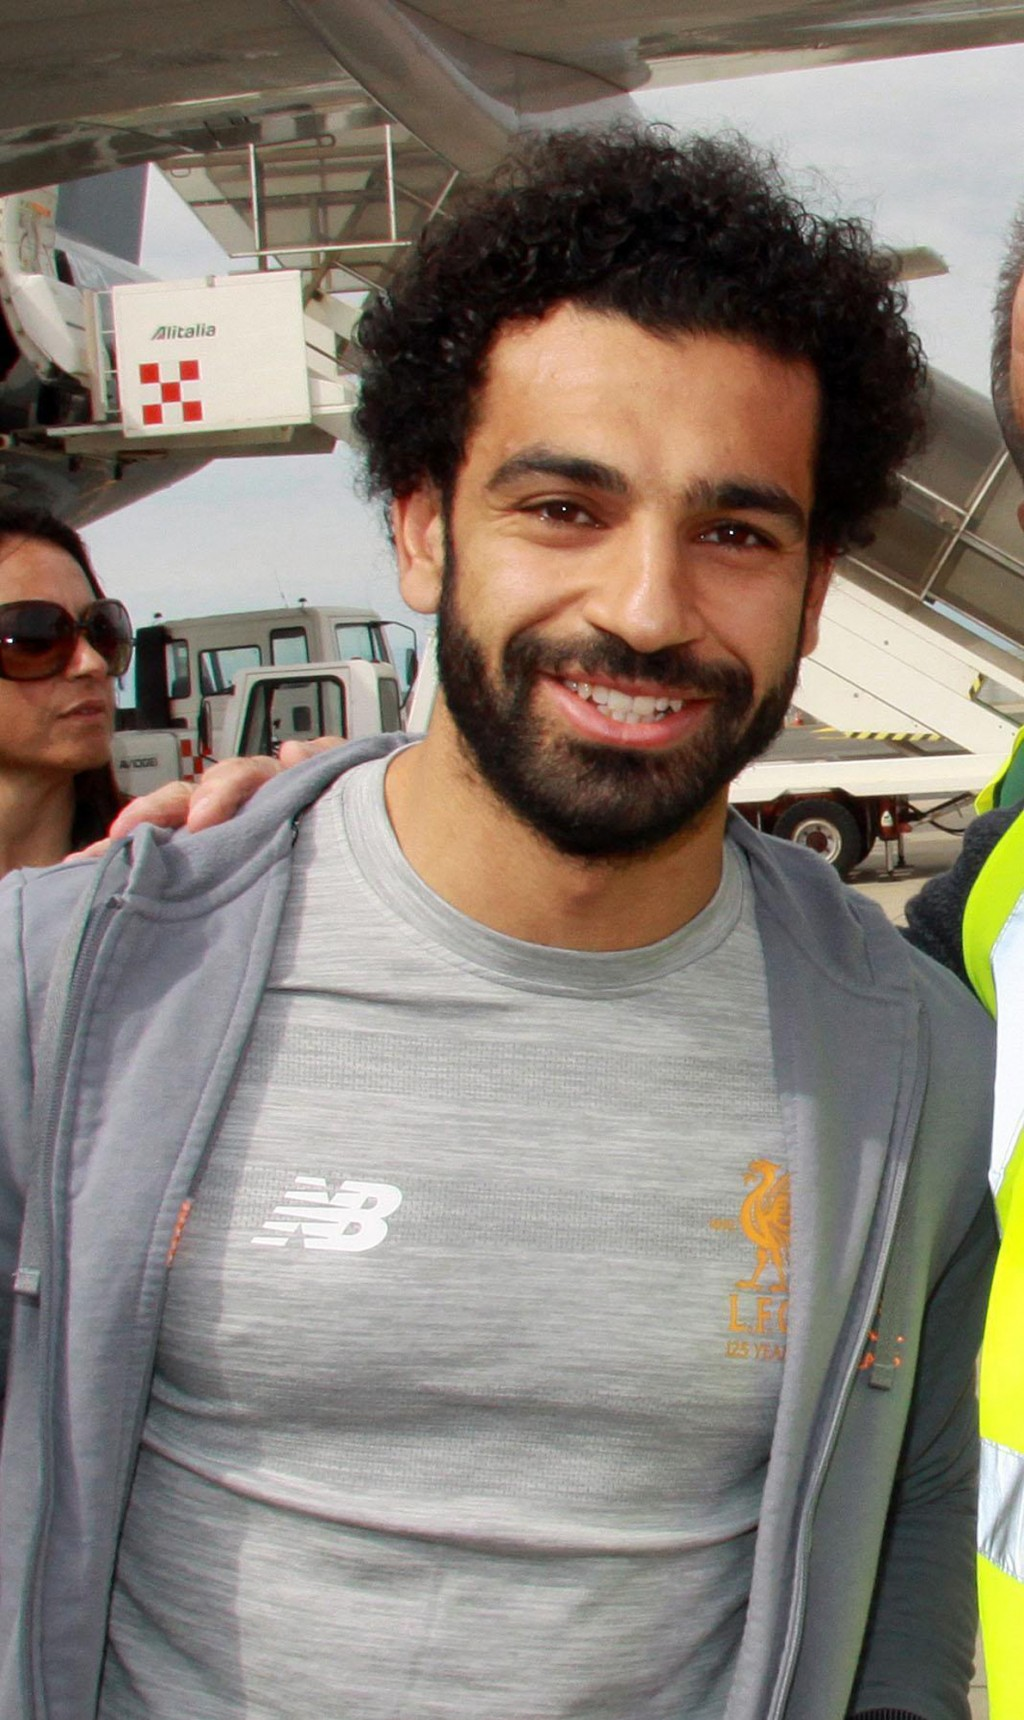 Liverpool's Mohamed Salah arrives at Fiumicino airport in Rome, Tuesday, May 1, 2018. Liverpool faces AS Roma in a Champions League soccer semifinal r...